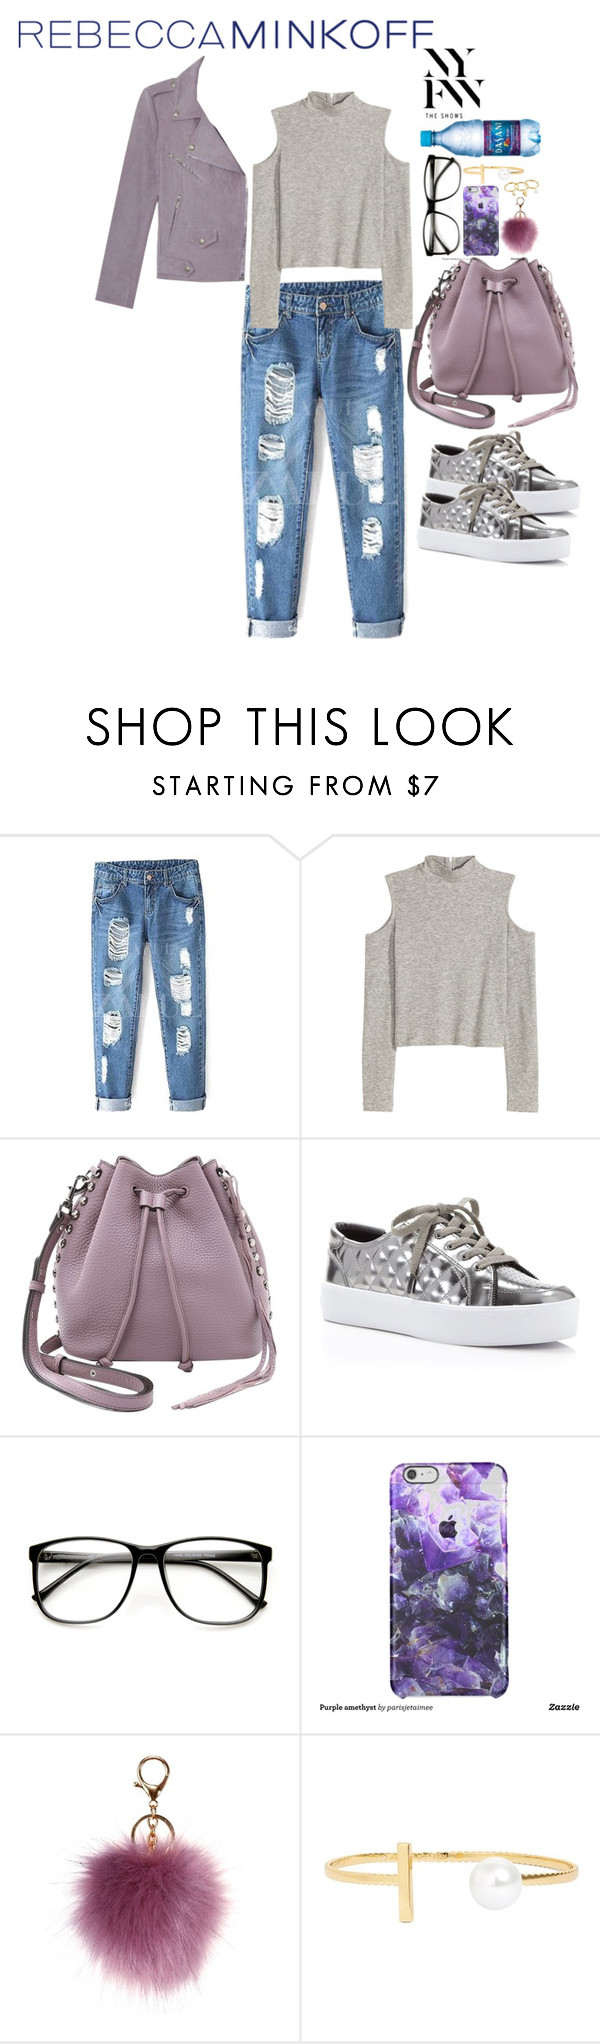 """""""lilac"""" by valsfashiondesings ❤ liked on Polyvore featuring Rebecca Minkoff, women's clothing, women, female, woman, misses, juniors, contestentry, seebuywear and rmspring"""